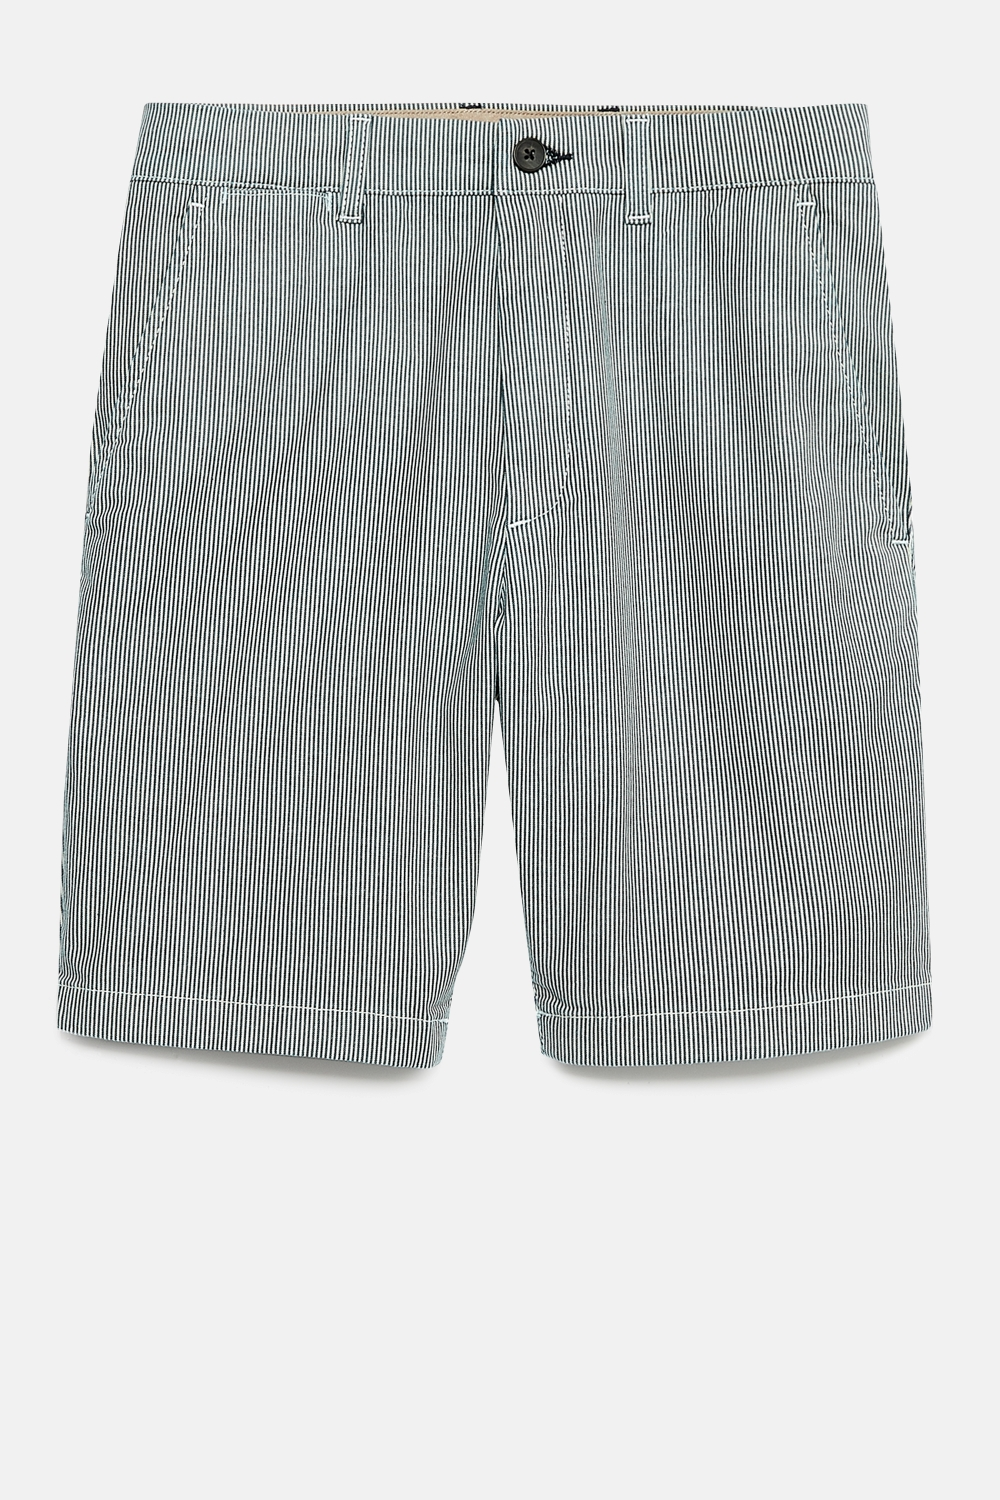 Jack Wills Navy Stripe WIDMORE CHINO SHORTS